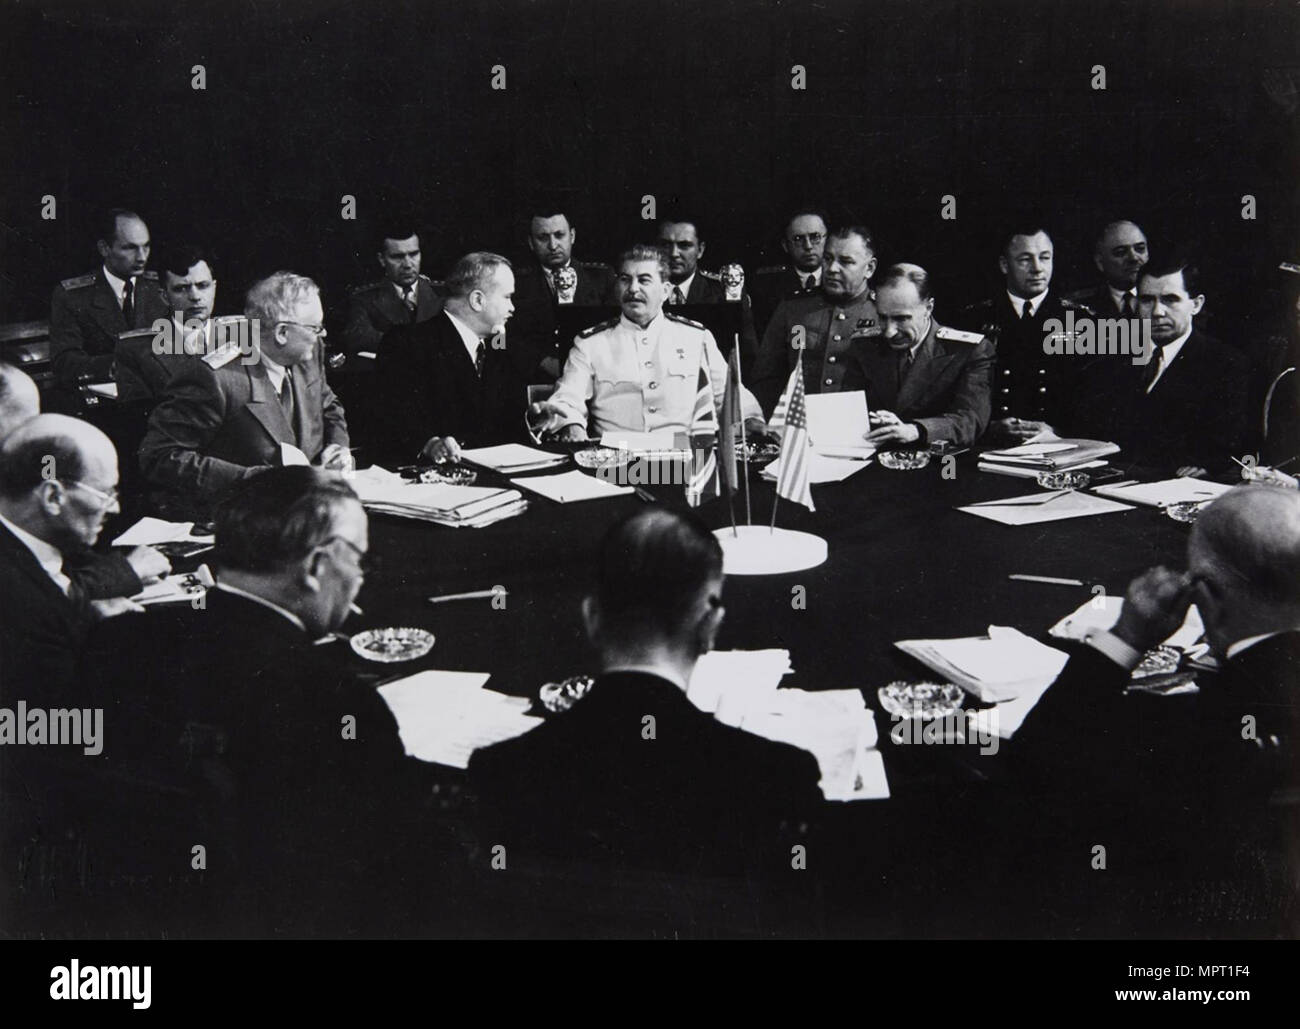 Stalin at the Potsdam Conference, July 1945, 1945. - Stock Image